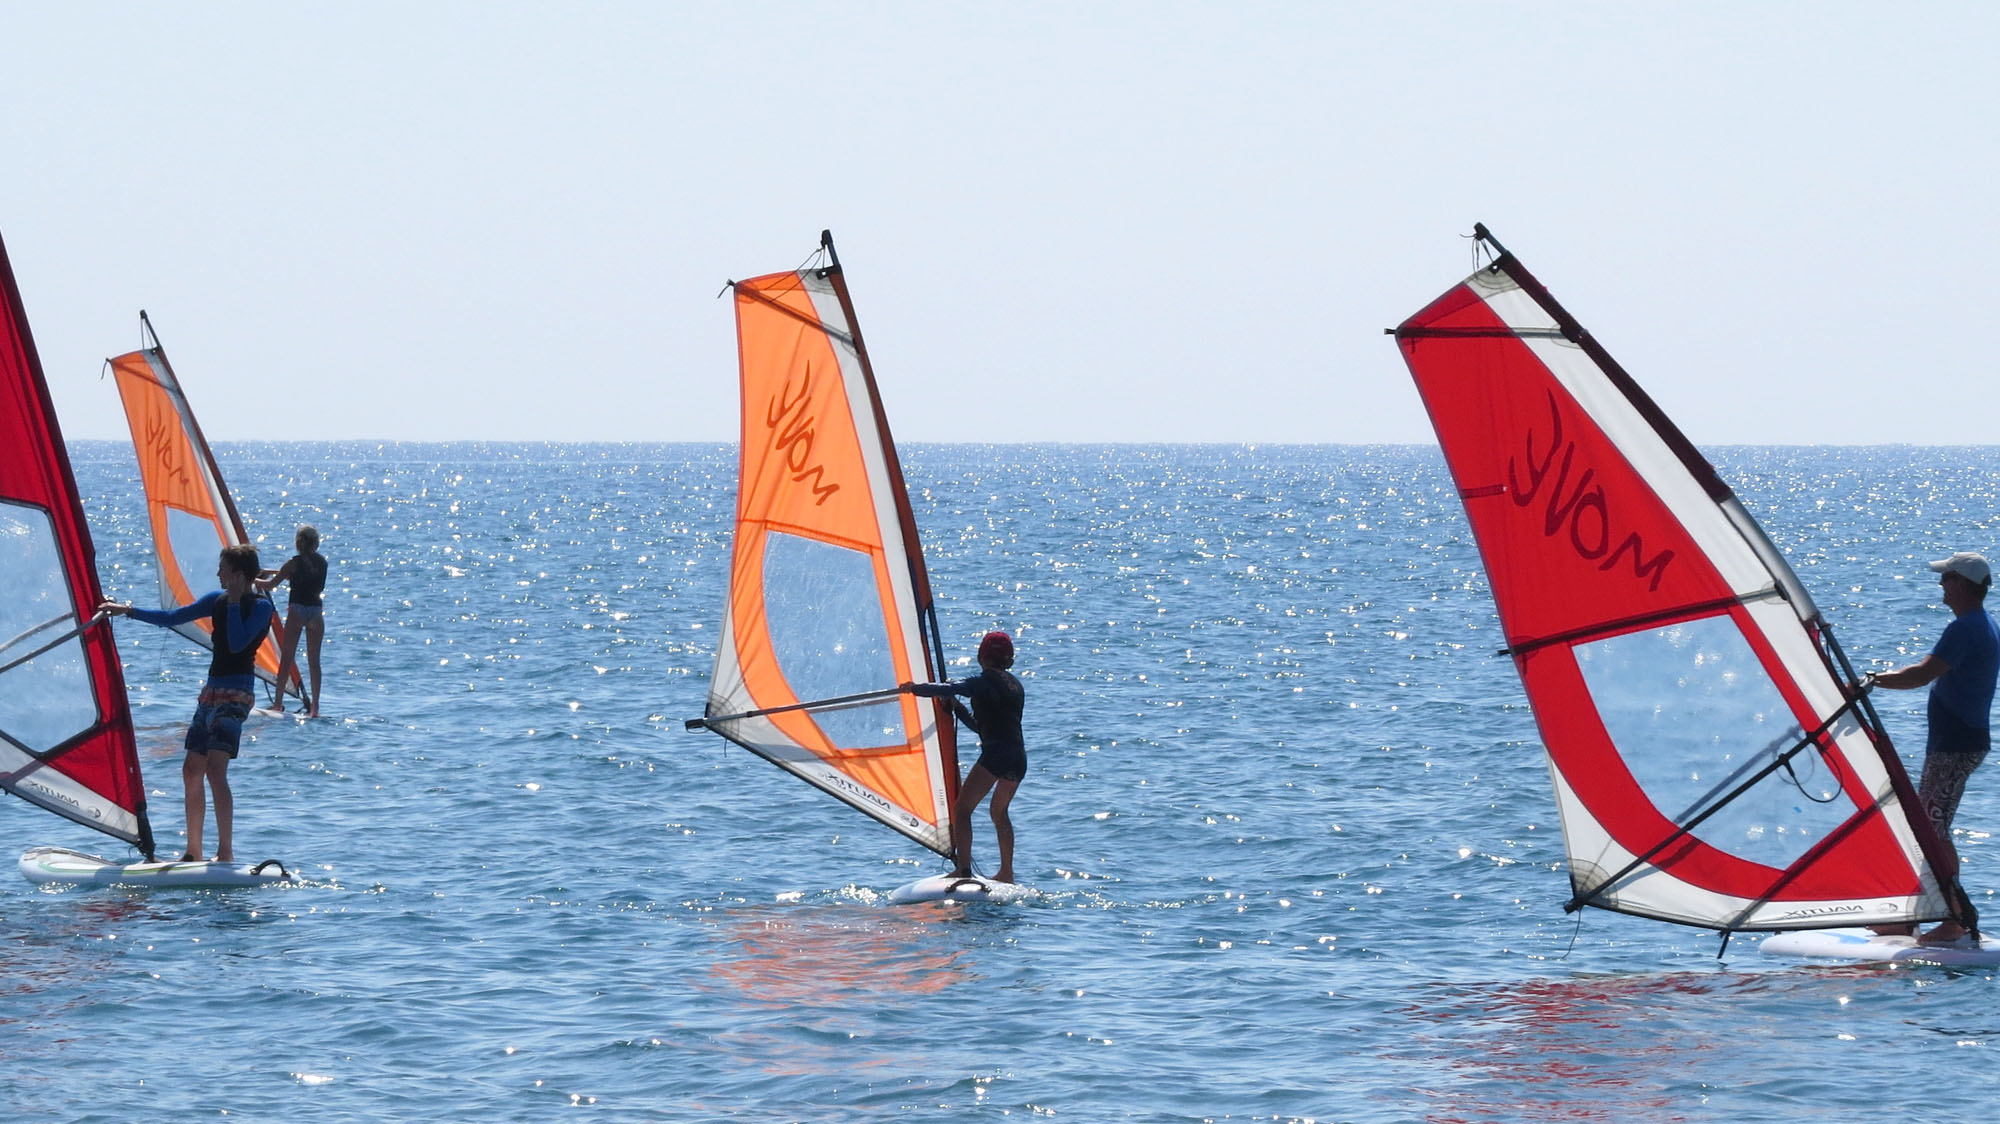 Windsurf, SUP and Catamaran